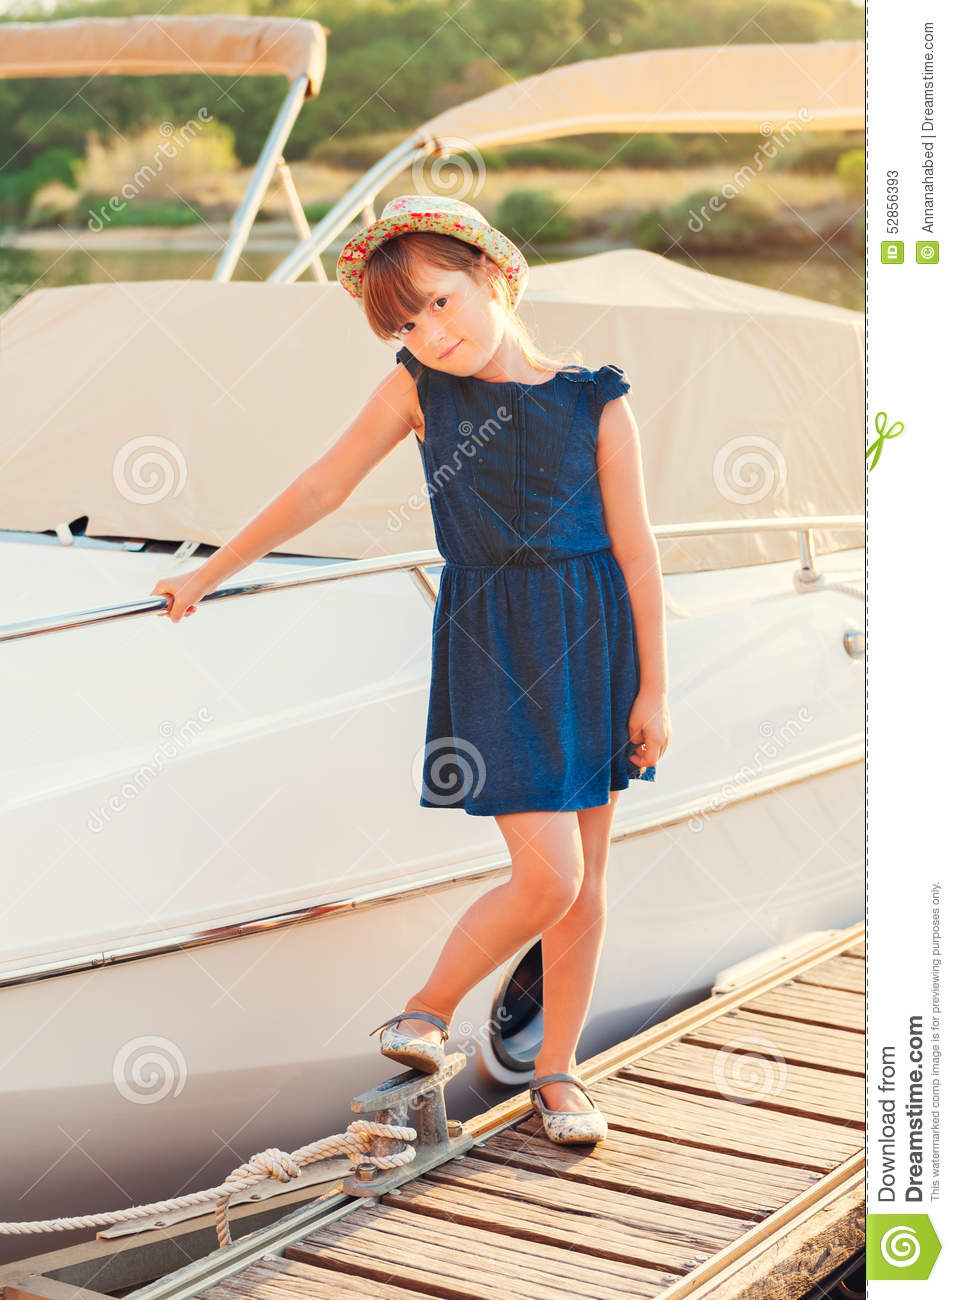 fd905f79a Sunset portrait of a cute little girl, standing by the lake next to white  yacht, wearing blue, dress and colorful hat